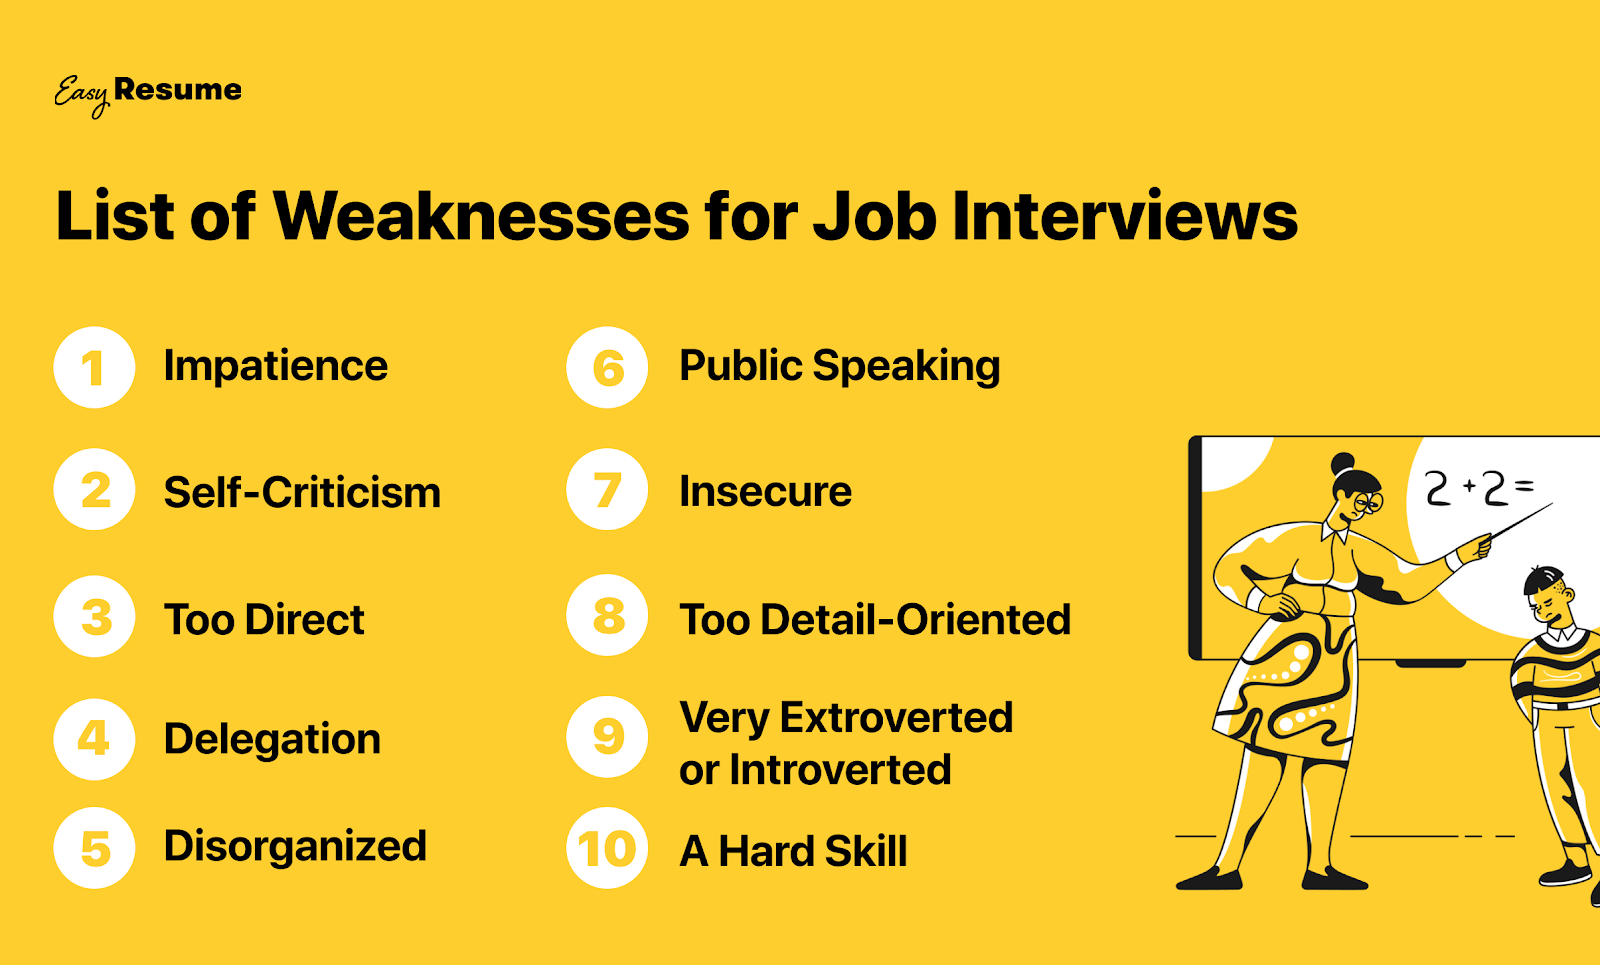 List of weaknesses for job interviews